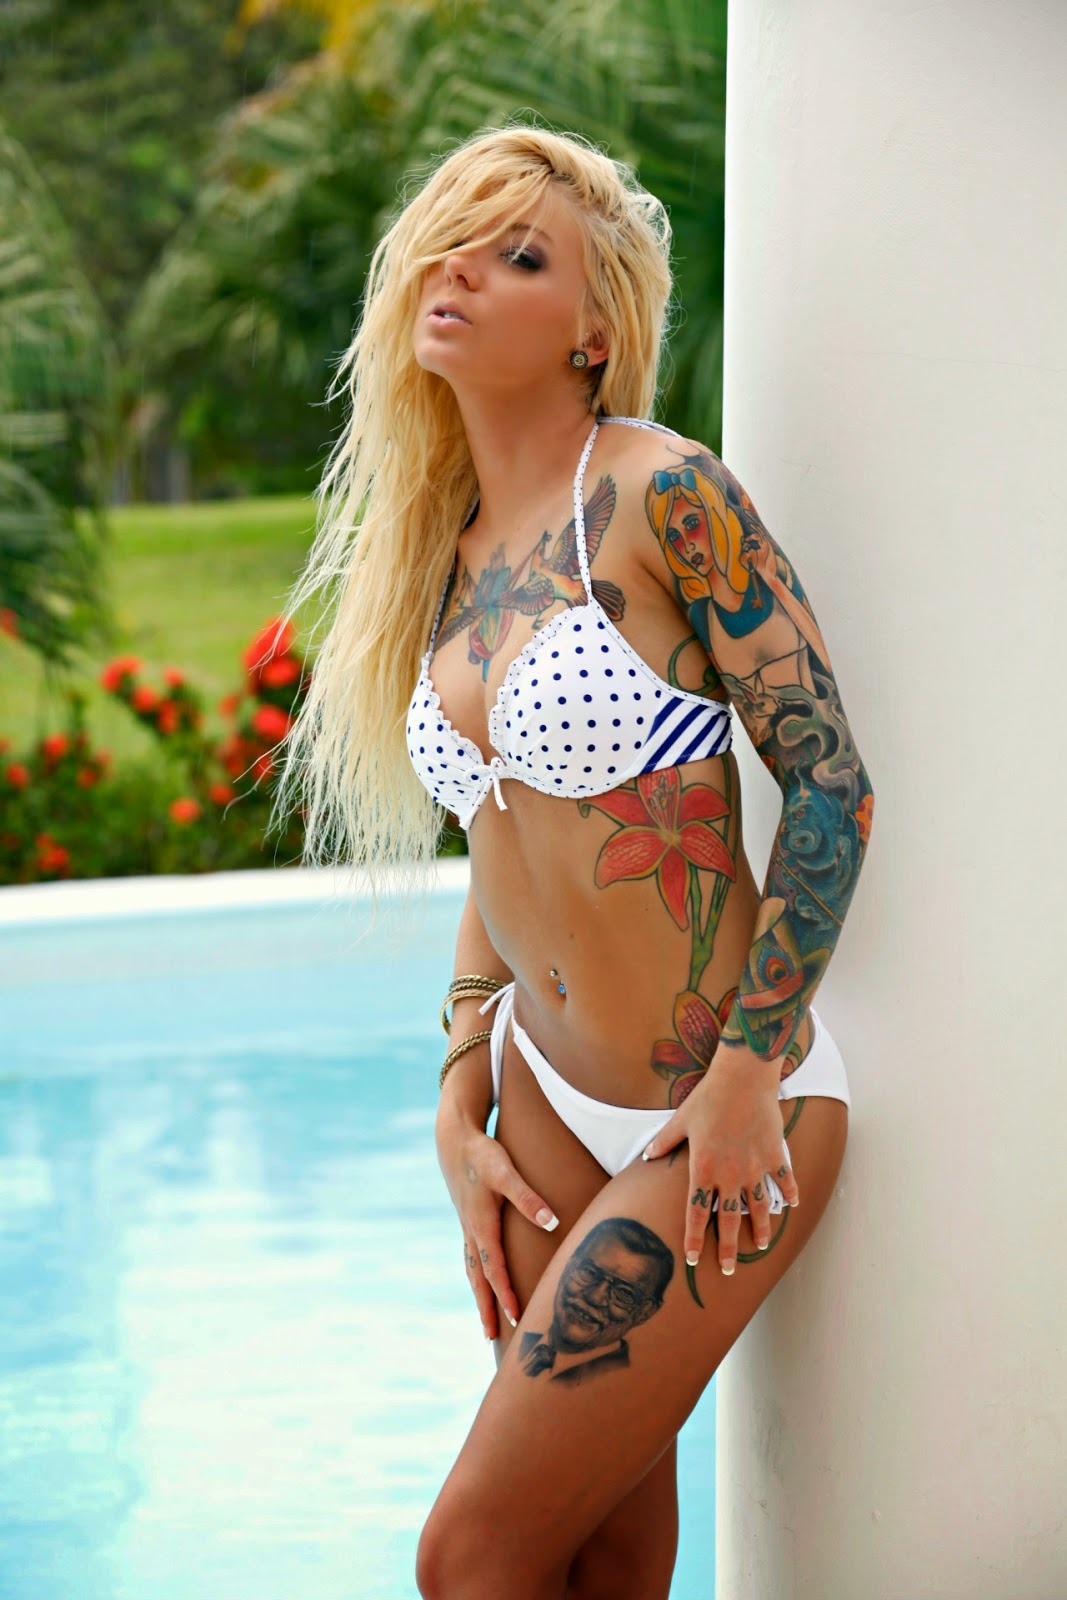 Taylor brynne sexy tattoo models for Hot tattoos for females